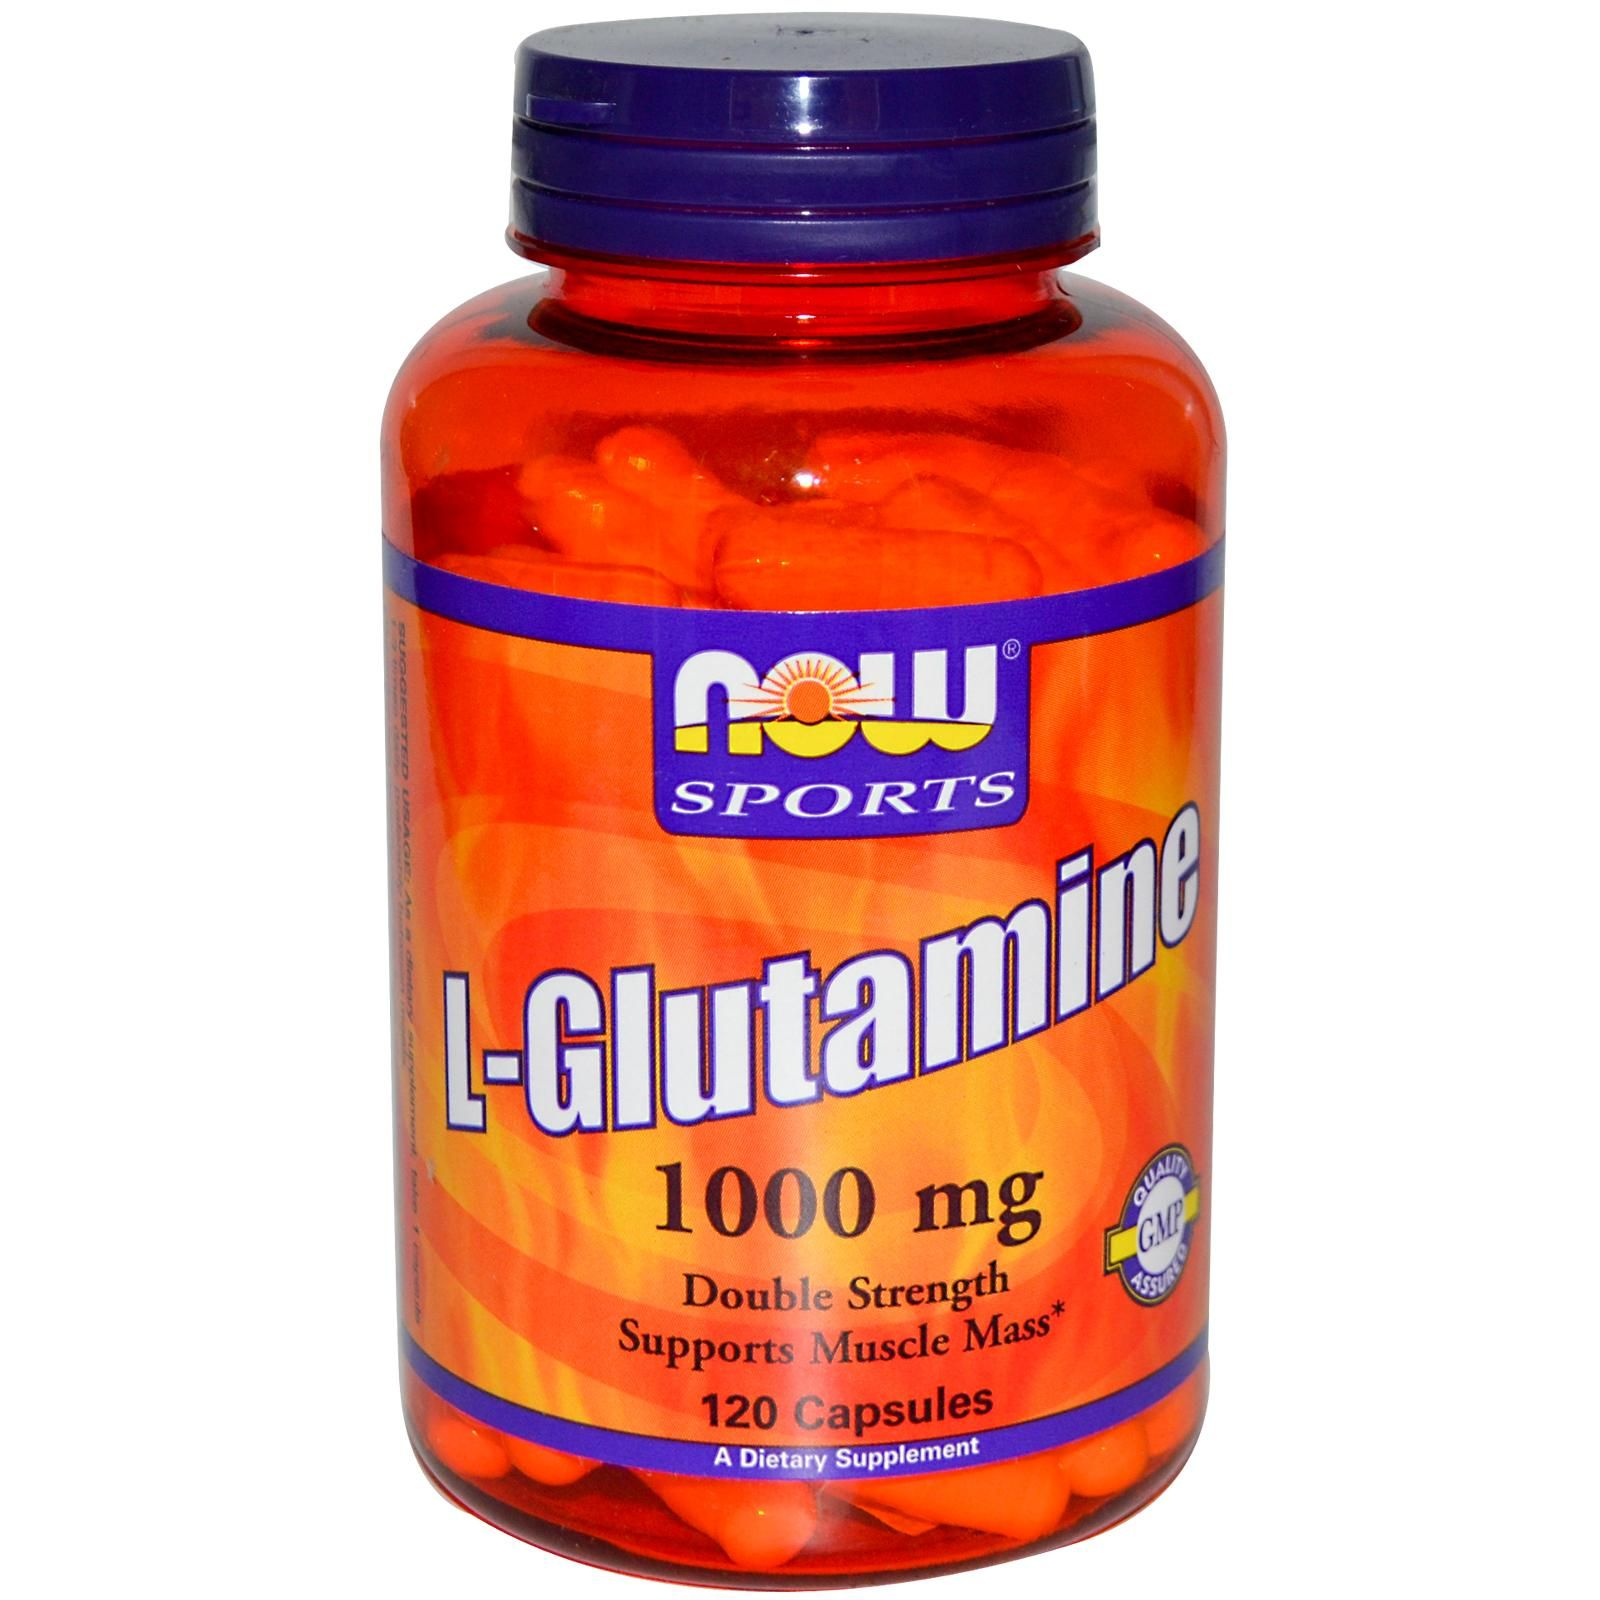 I supplement with LGlutamine after workouts the health